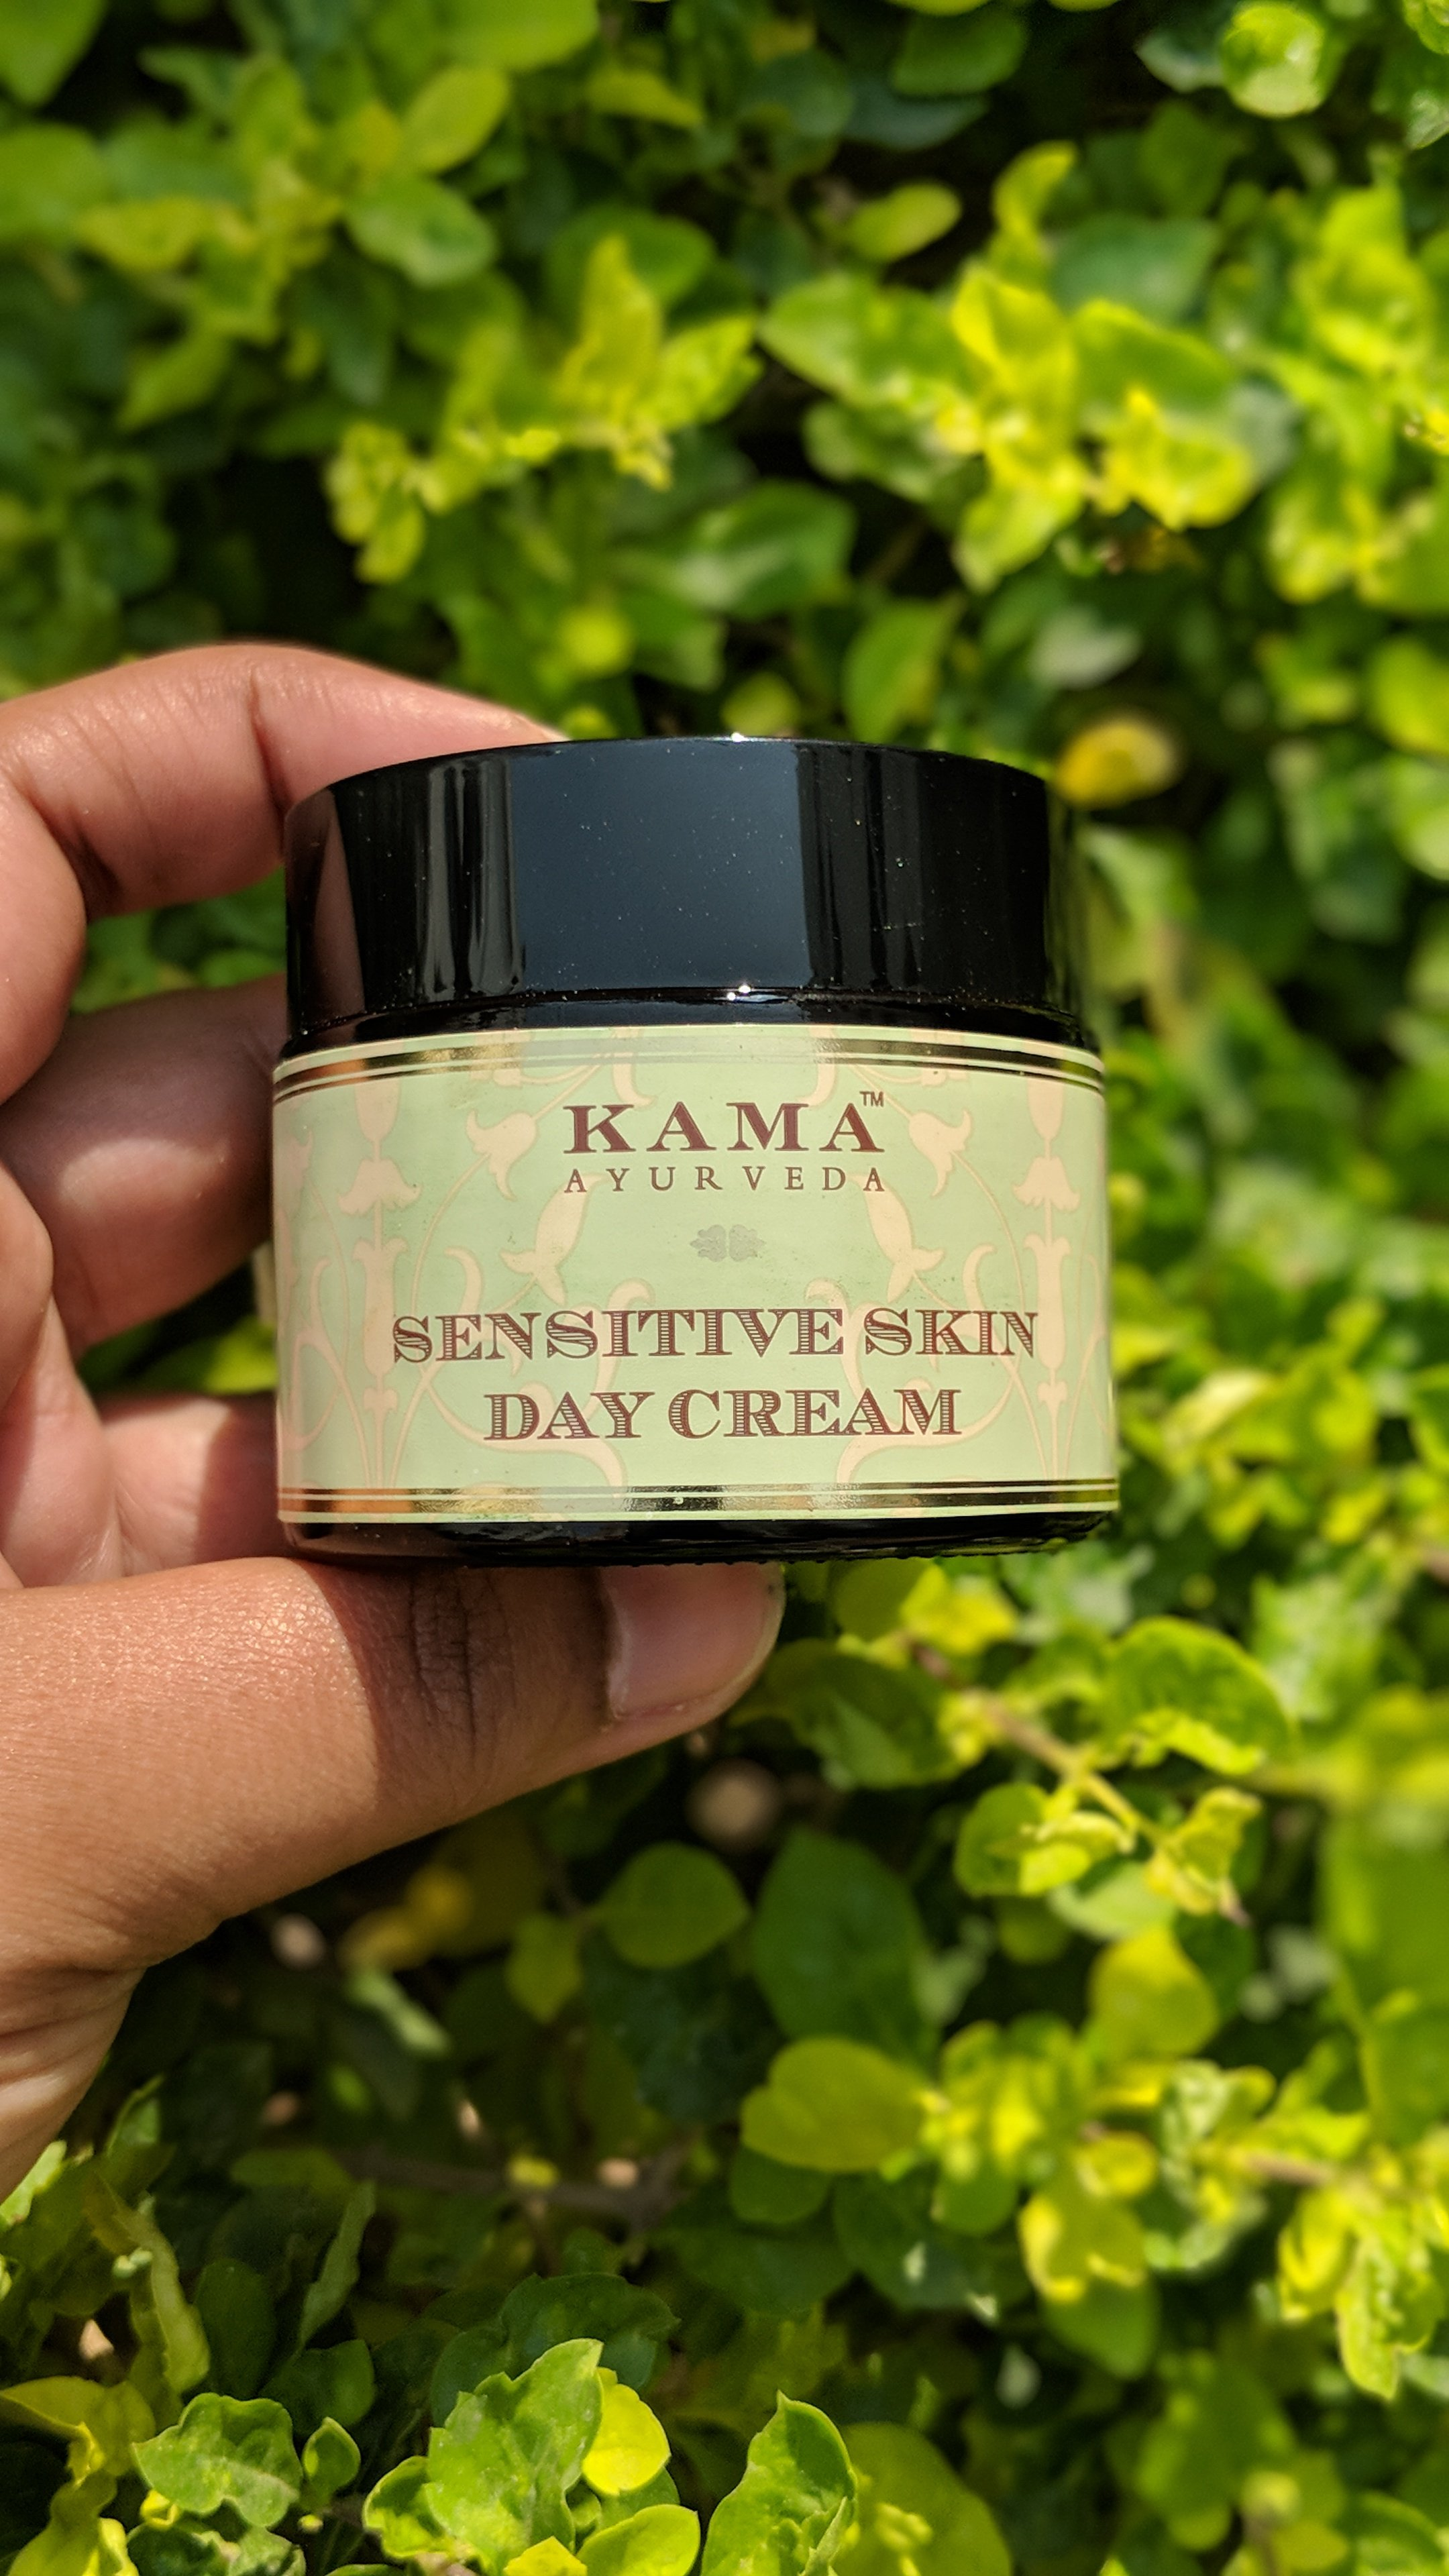 Kama Ayurveda Sensitive Skin Day Cream